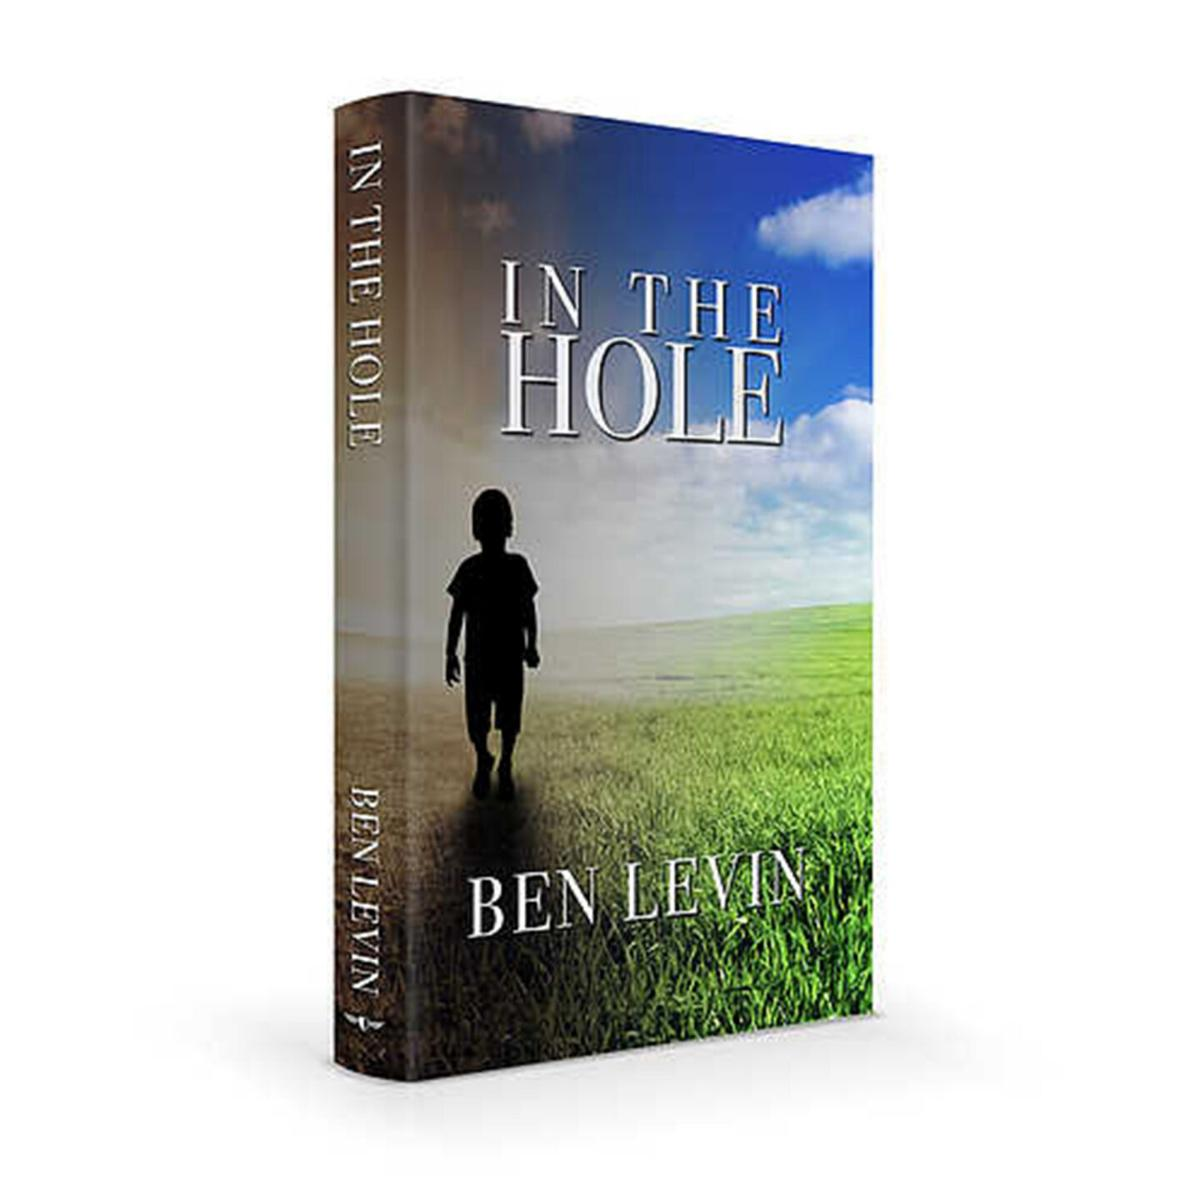 'In the Hole' offers a kid's-eye view of homelessness